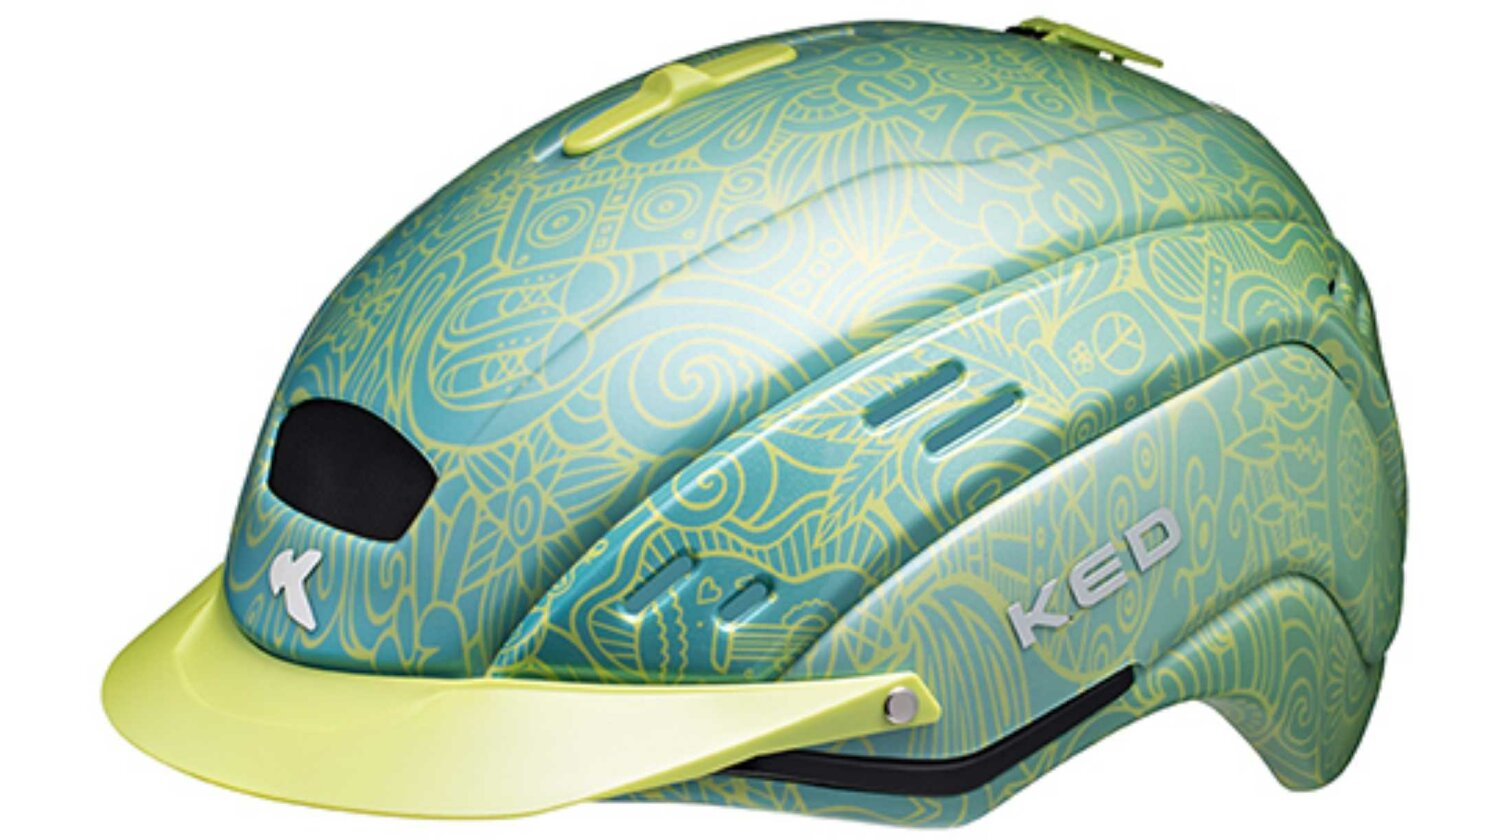 KED Cocon Helm green M/55-59 cm